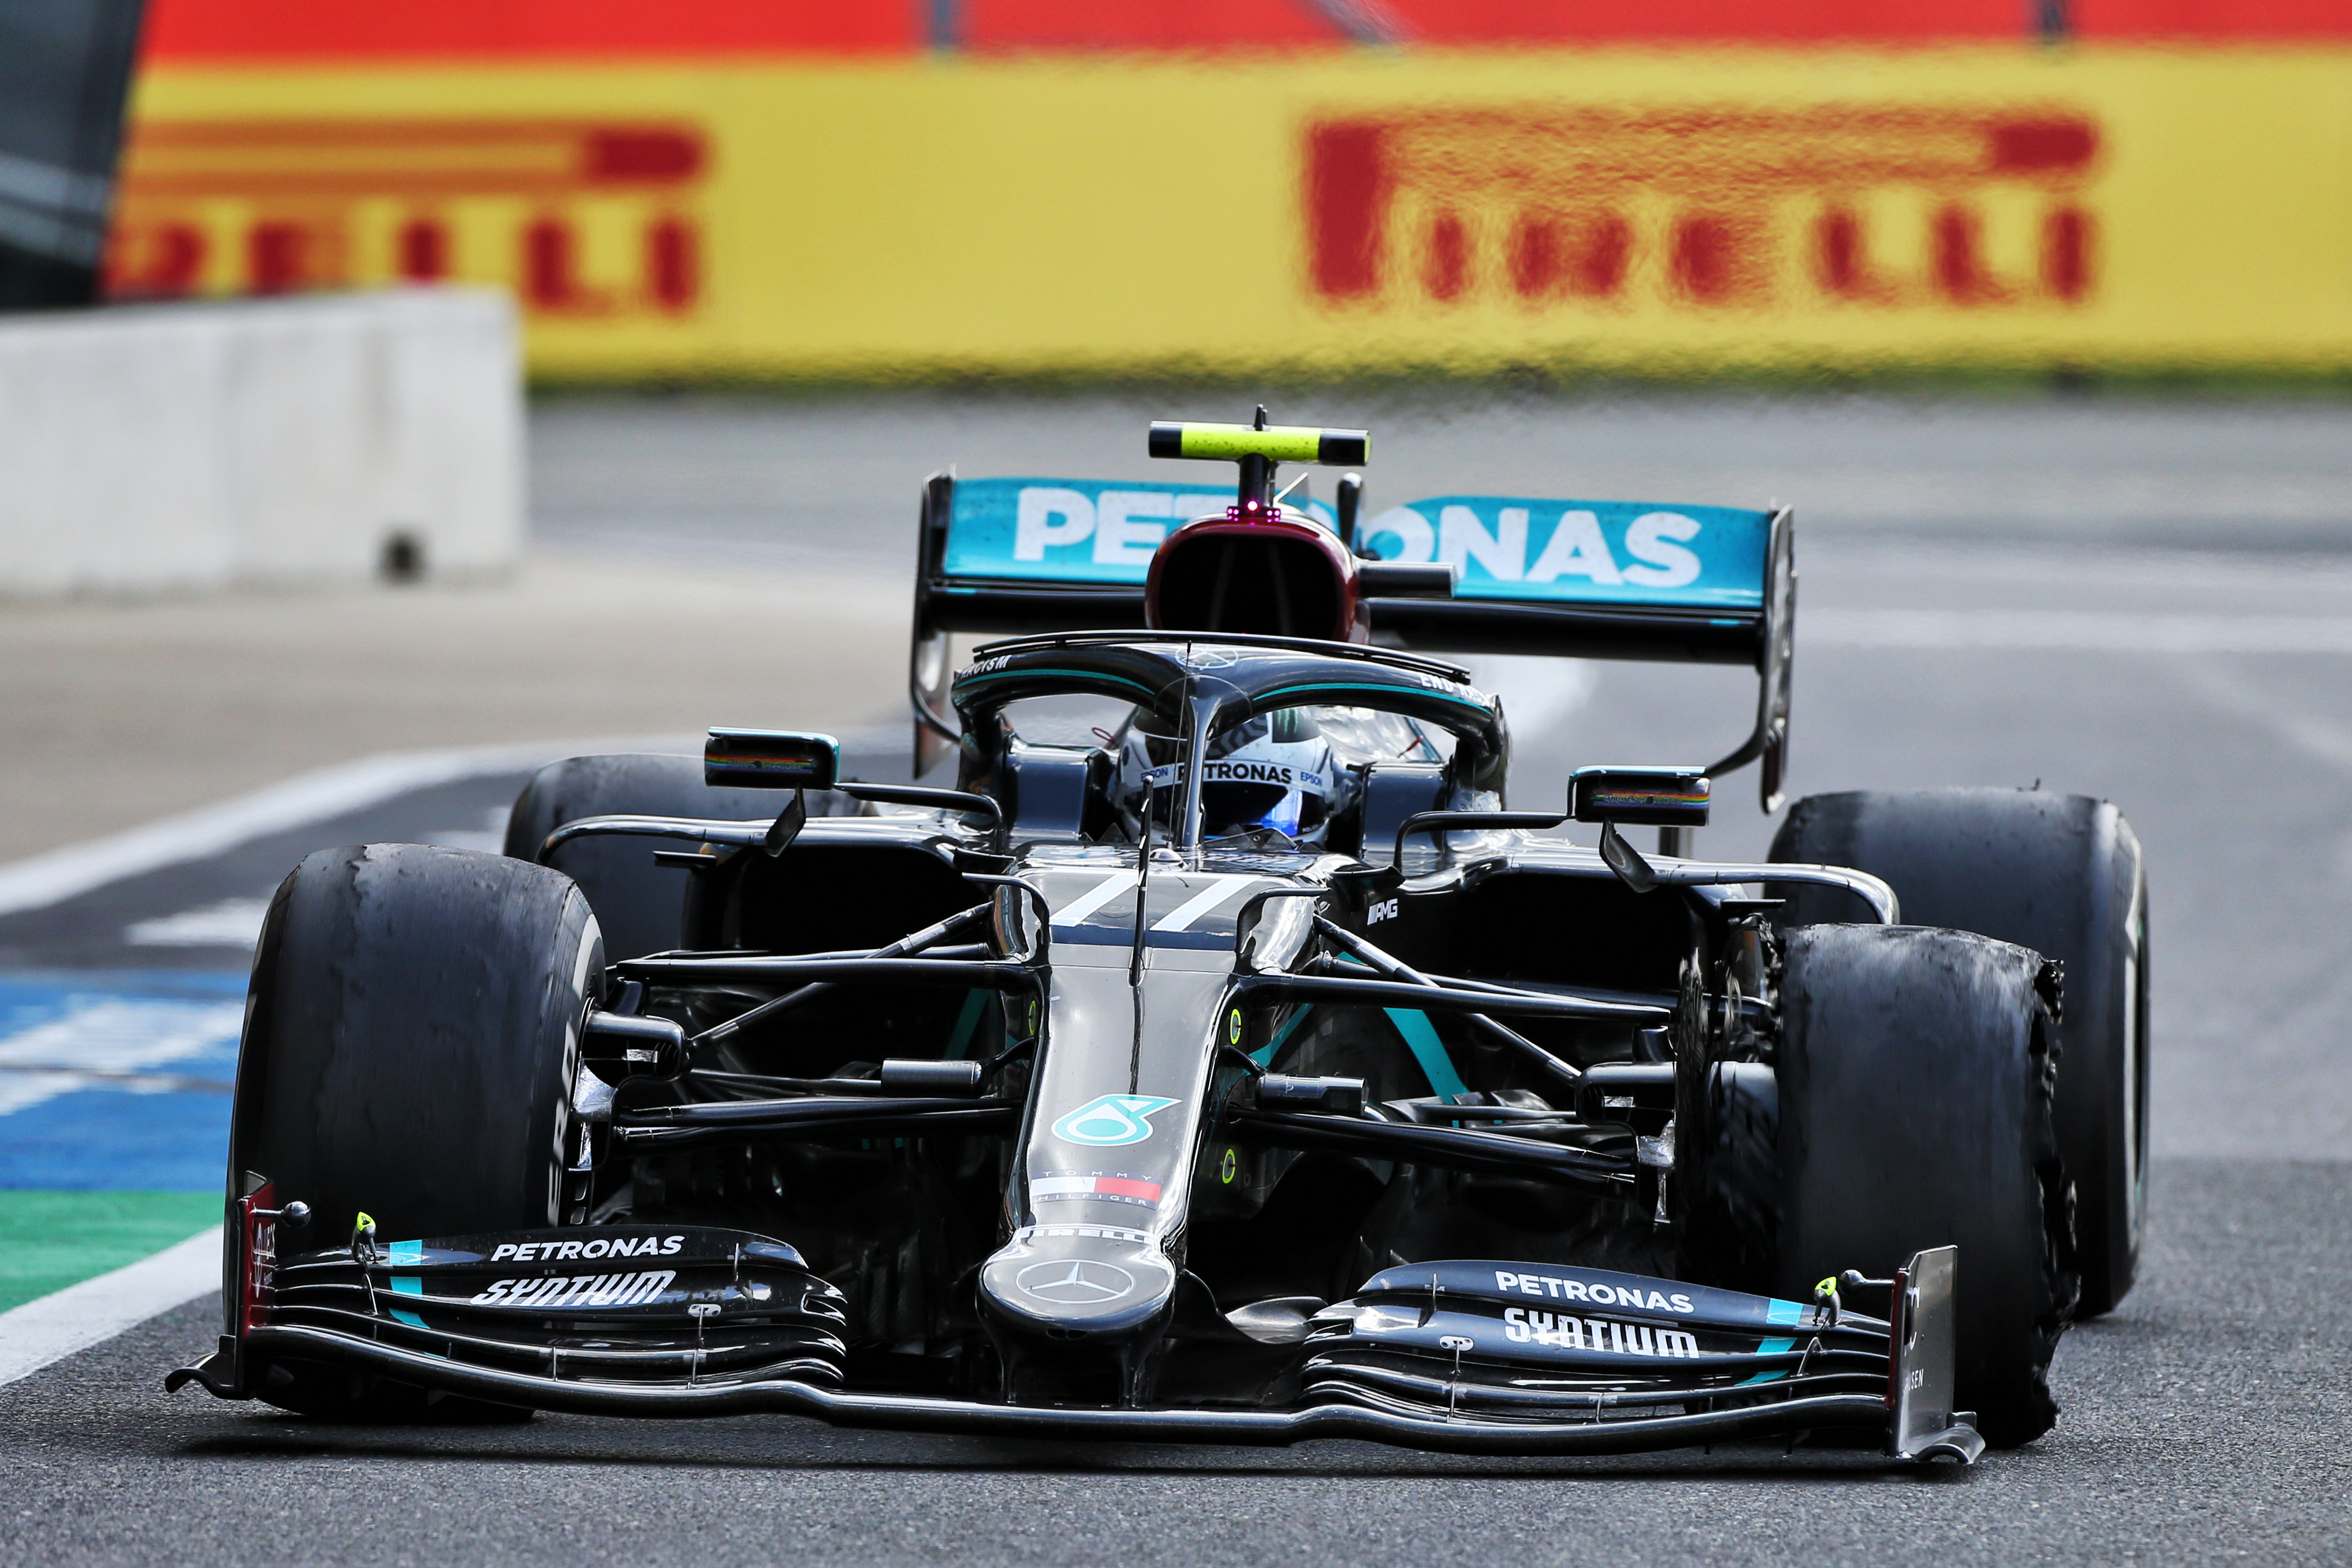 Valtteri Bottas Mercedes puncture British Grand Prix 2020 Silverstone